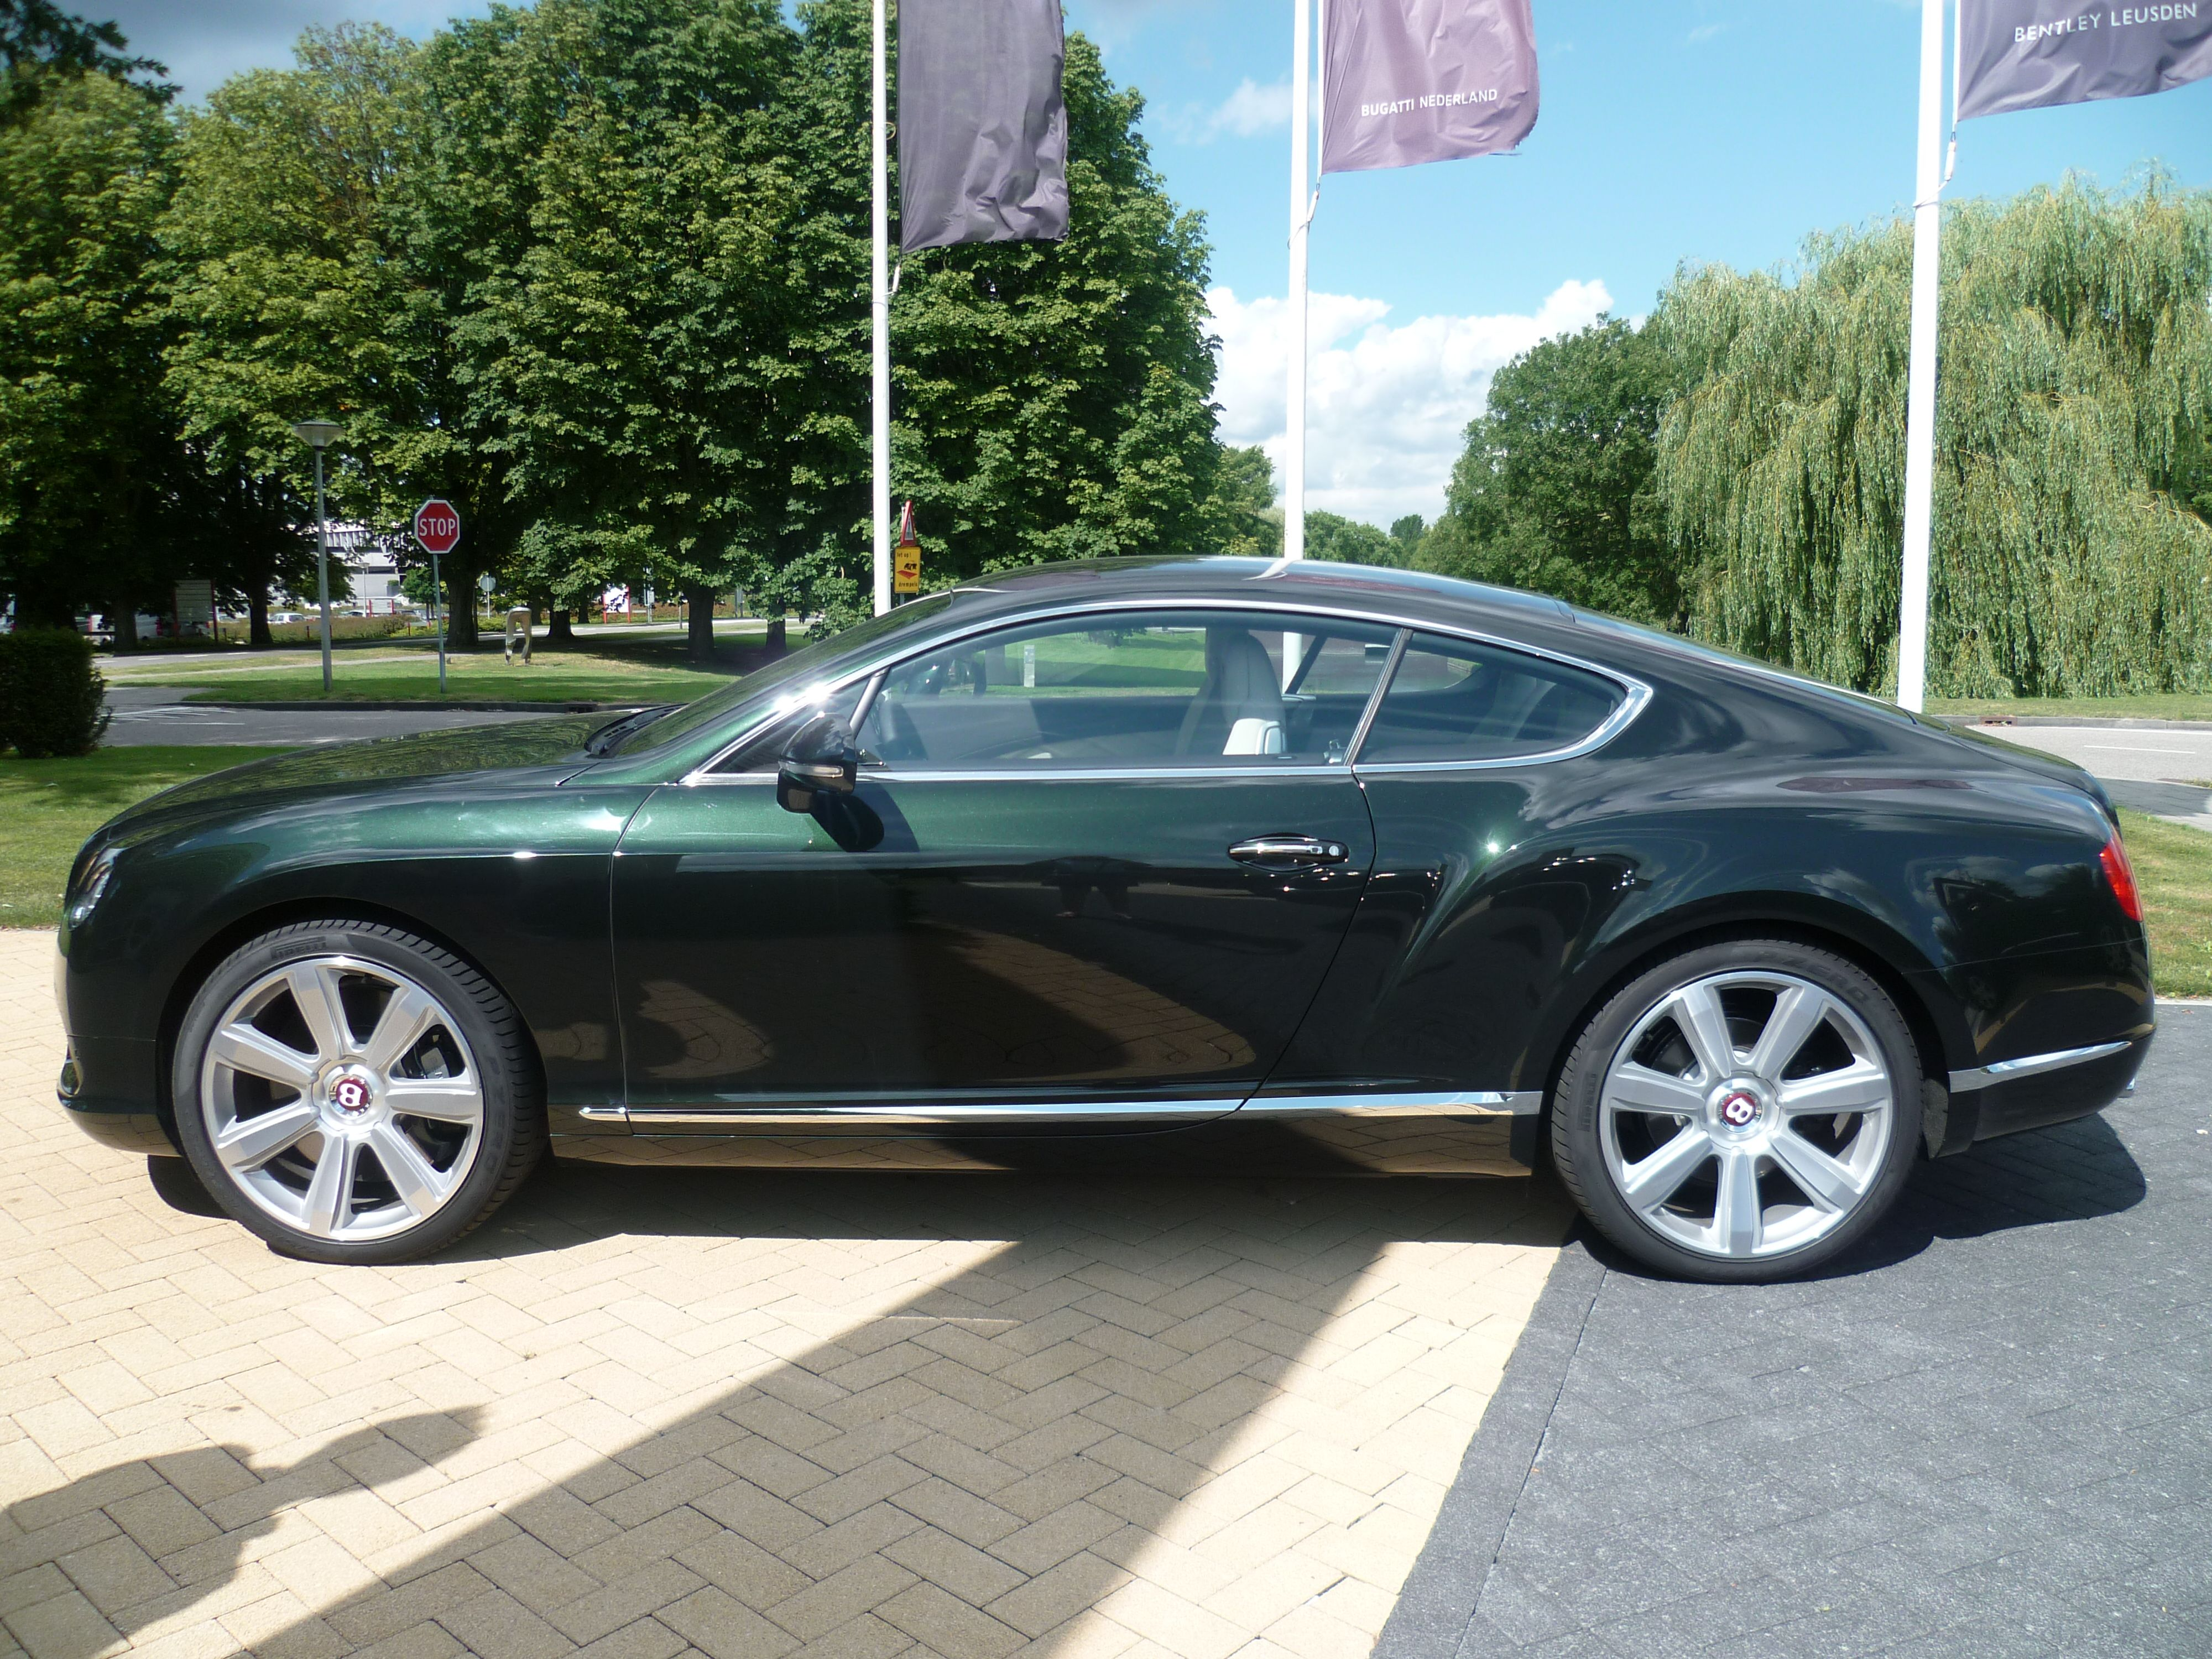 continental bentley photos com for informations bestcarmag gtc sale articles used makes